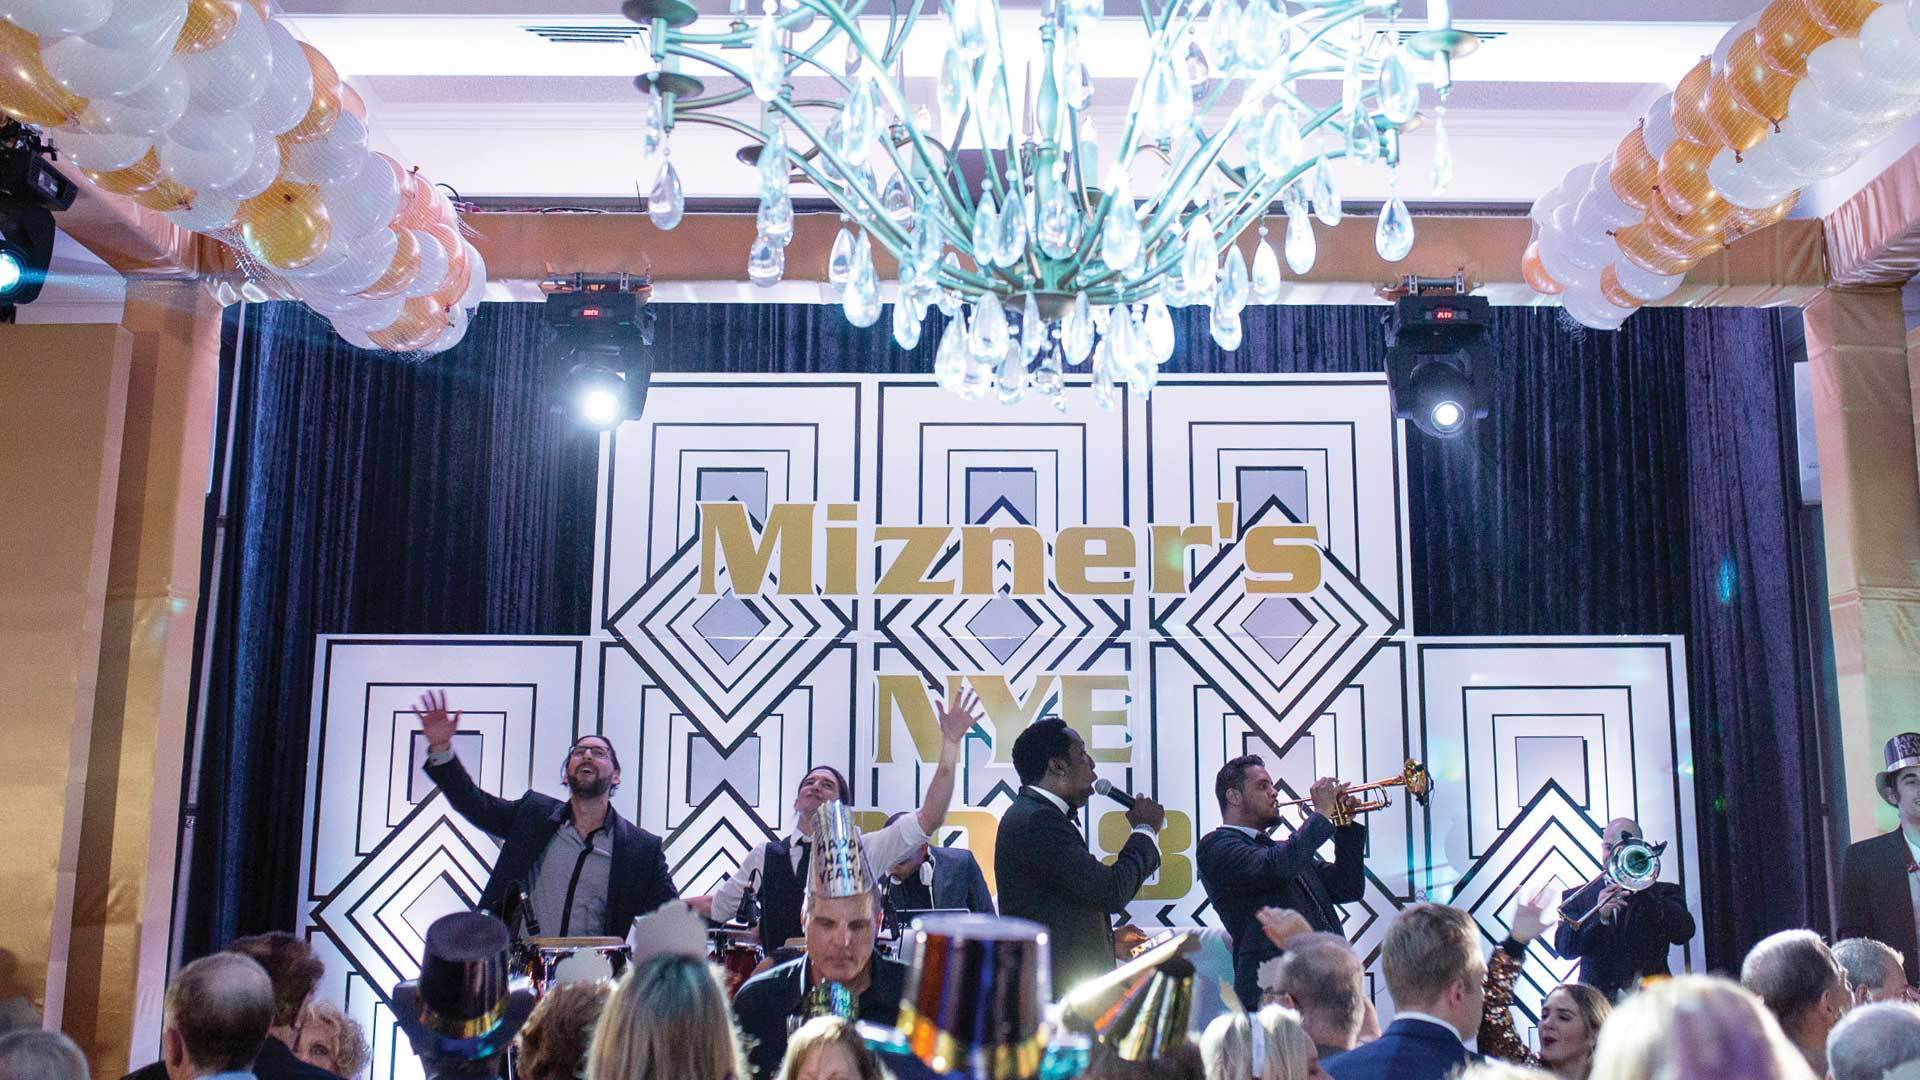 mizner-country-club-gallery-social-event-11